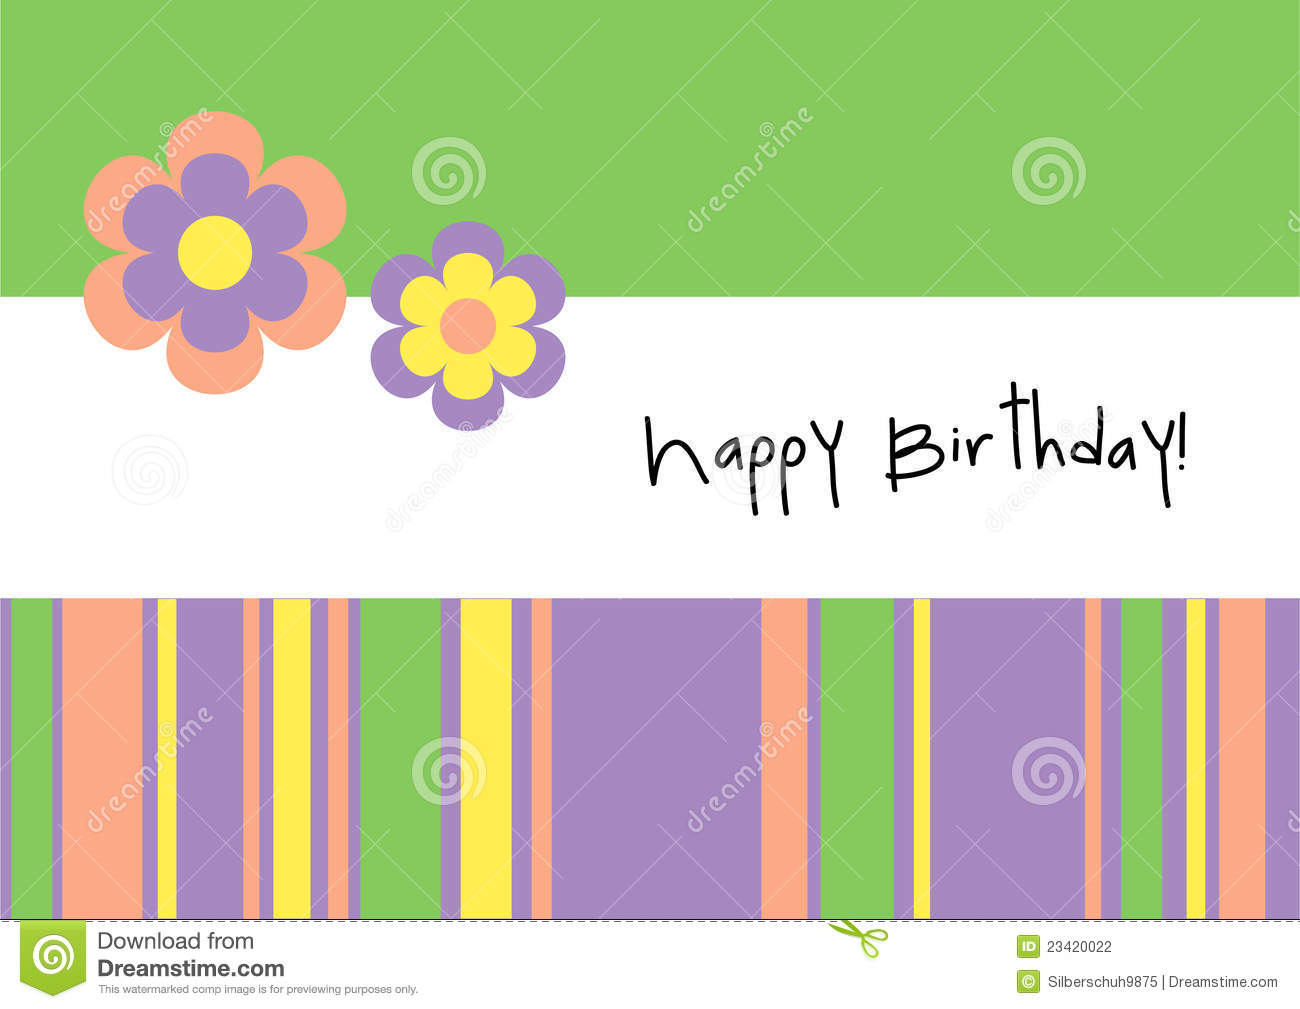 free birthday card design templates ; happy-birthday-card-template-awesome-decor-9-on-gallery-design-ideas-green-background-design-flowers-happy-birthday-card-template